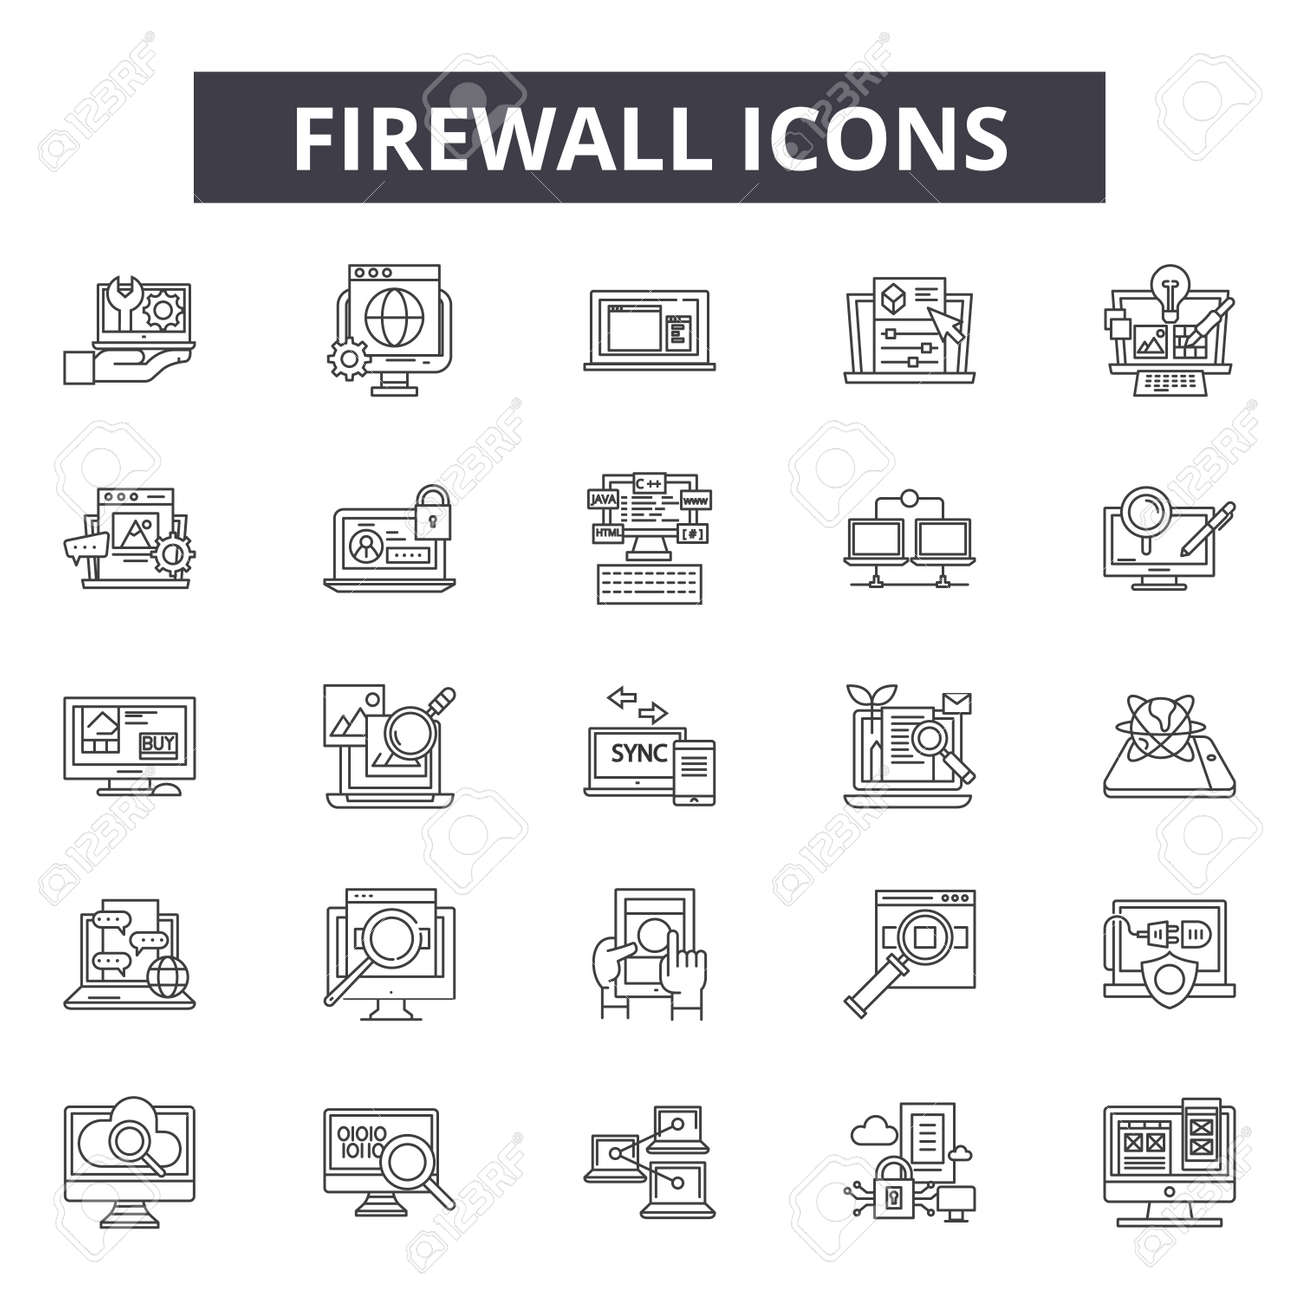 Firewall line icons for web and mobile. Editable stroke signs. Firewall outline concept illustrations - 119390211